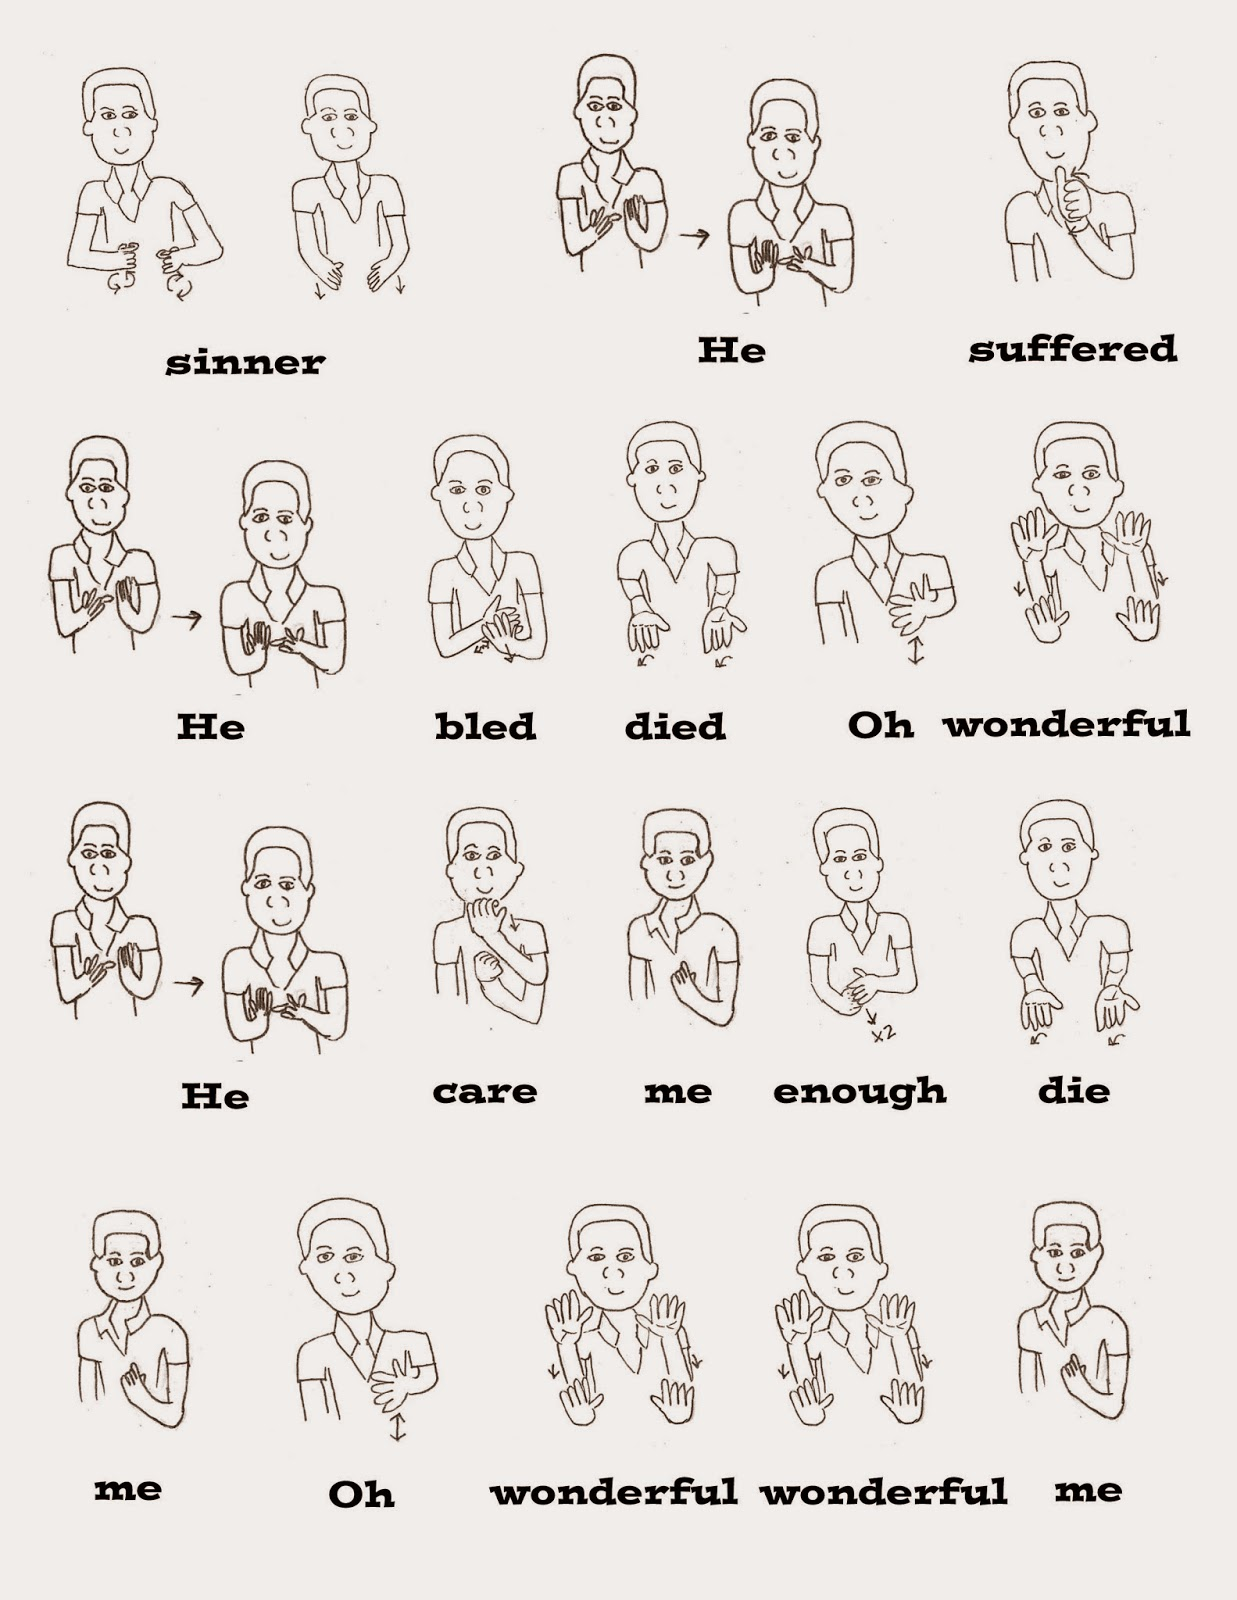 how to say words in sign language